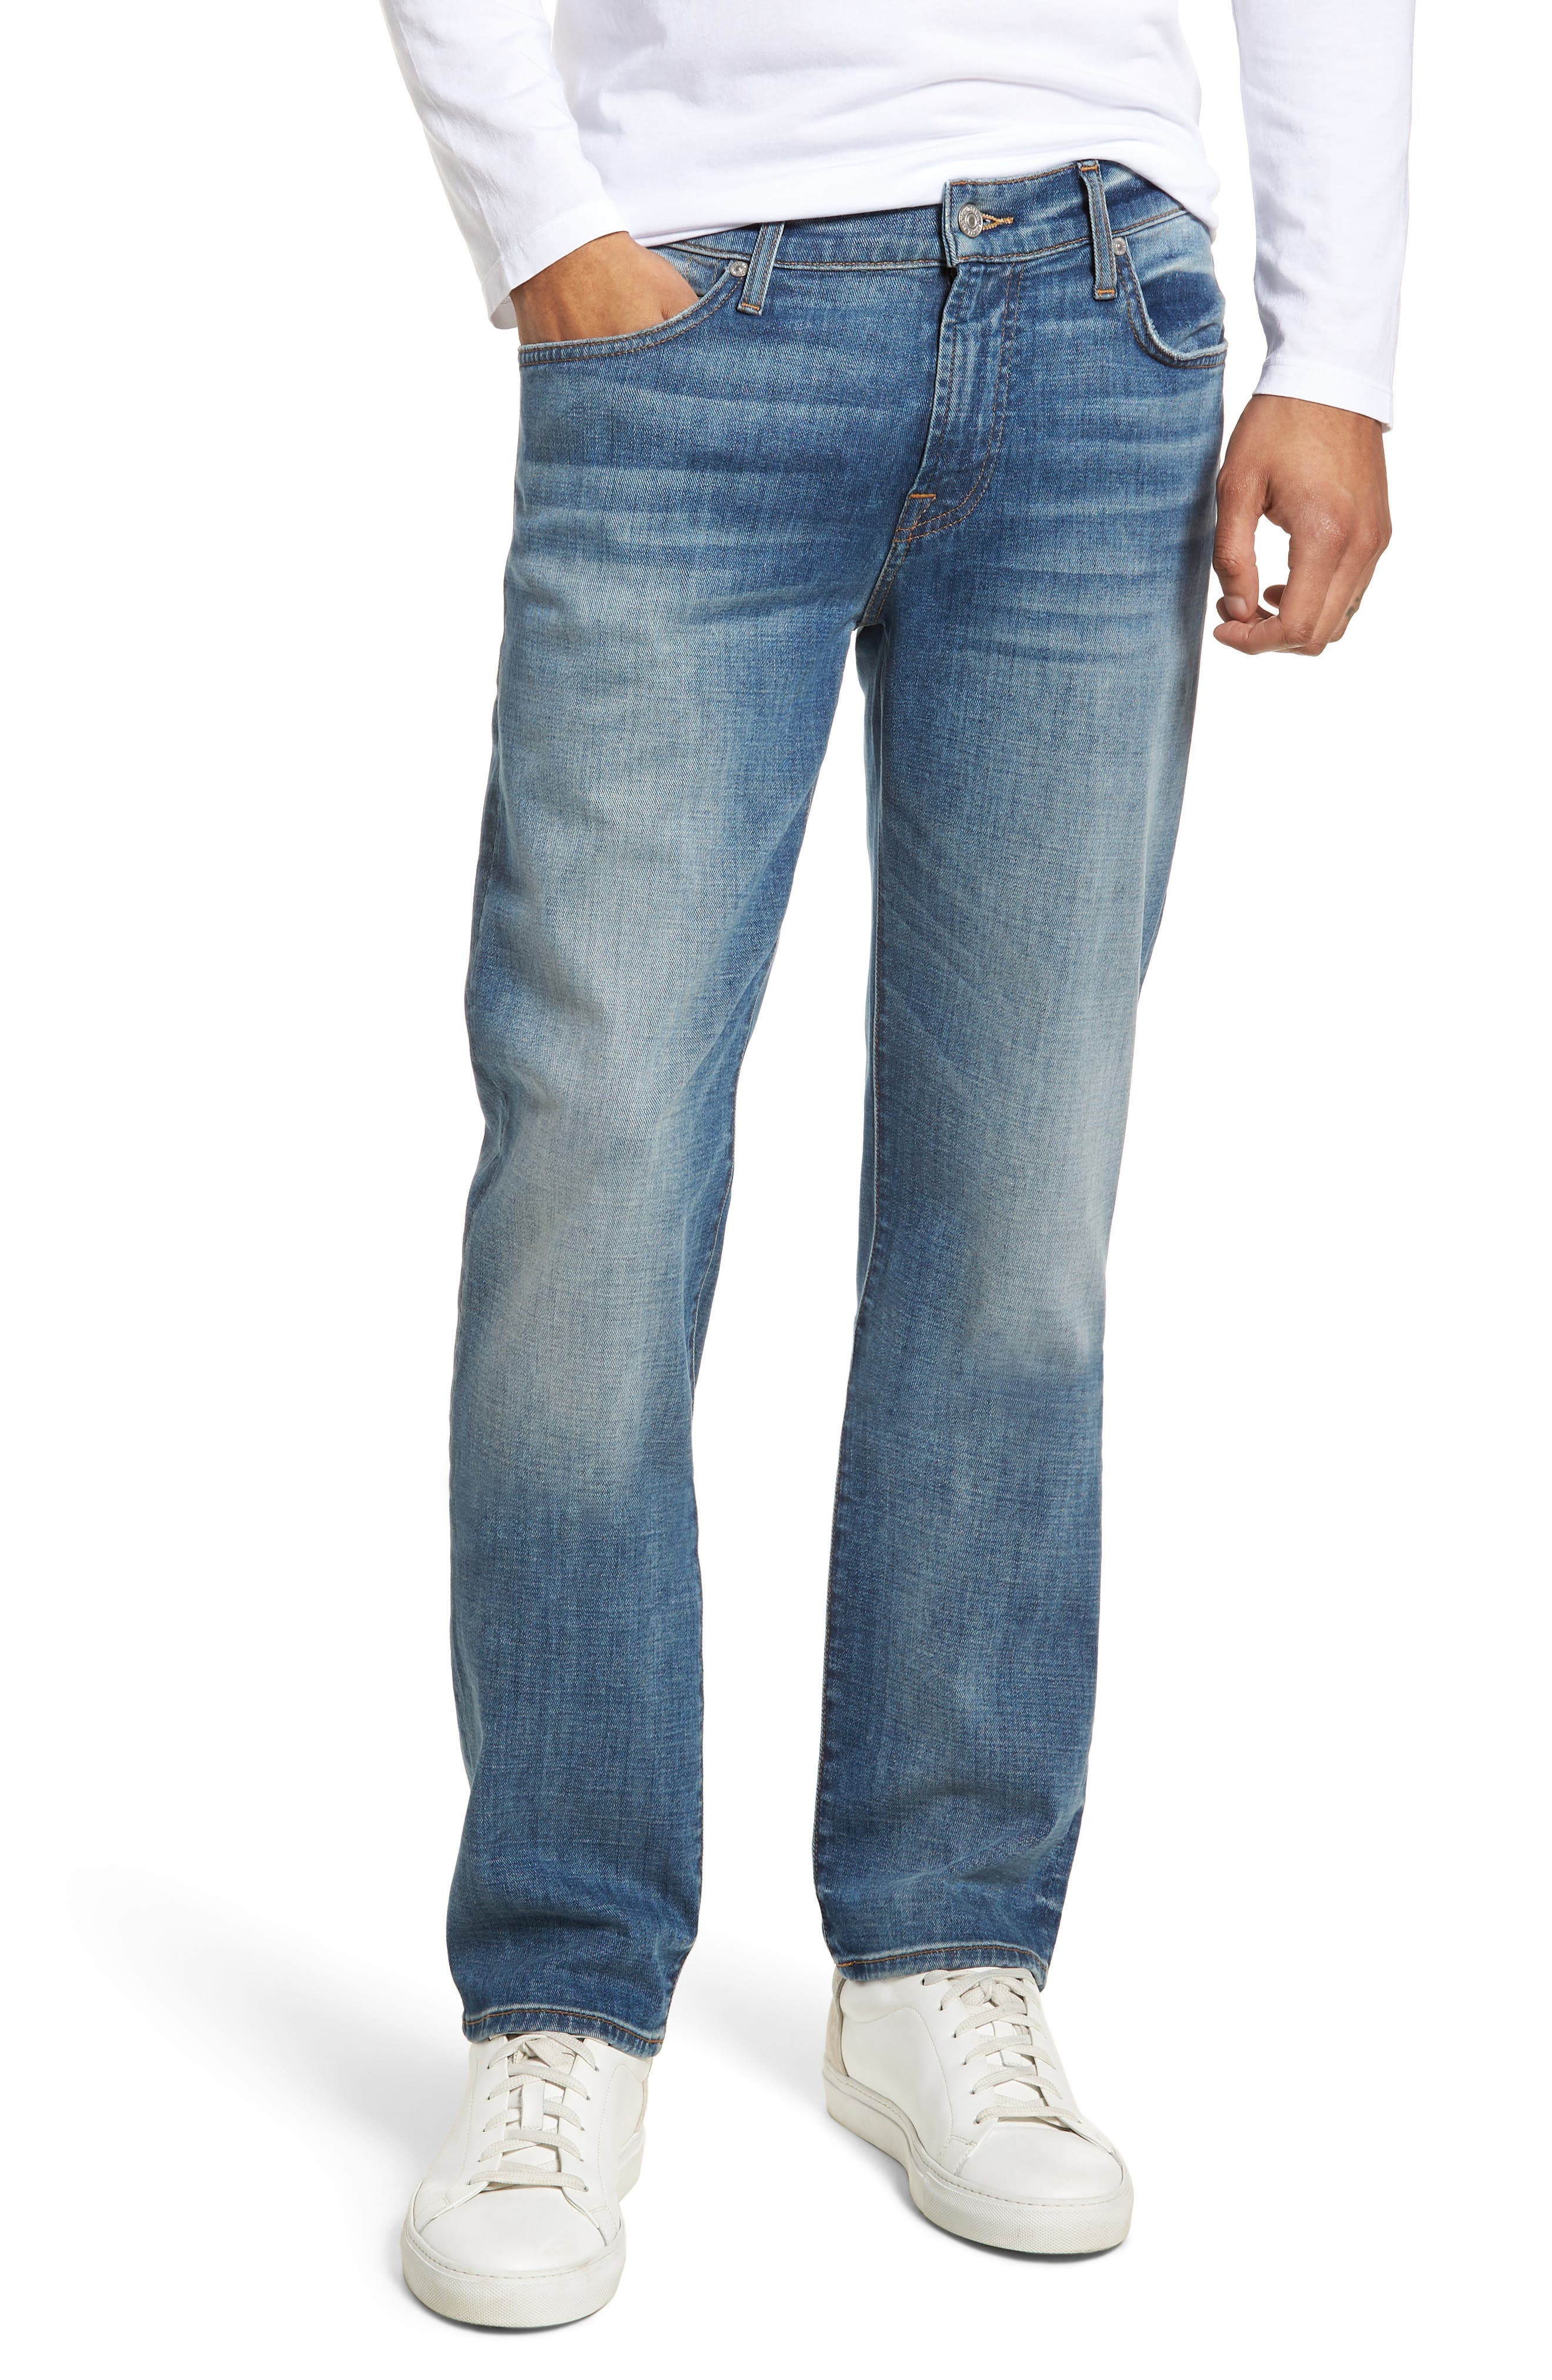 7 For All Mankind Slimmy Slim Fit Jeans,                             Main thumbnail 1, color,                             Desert Warrior